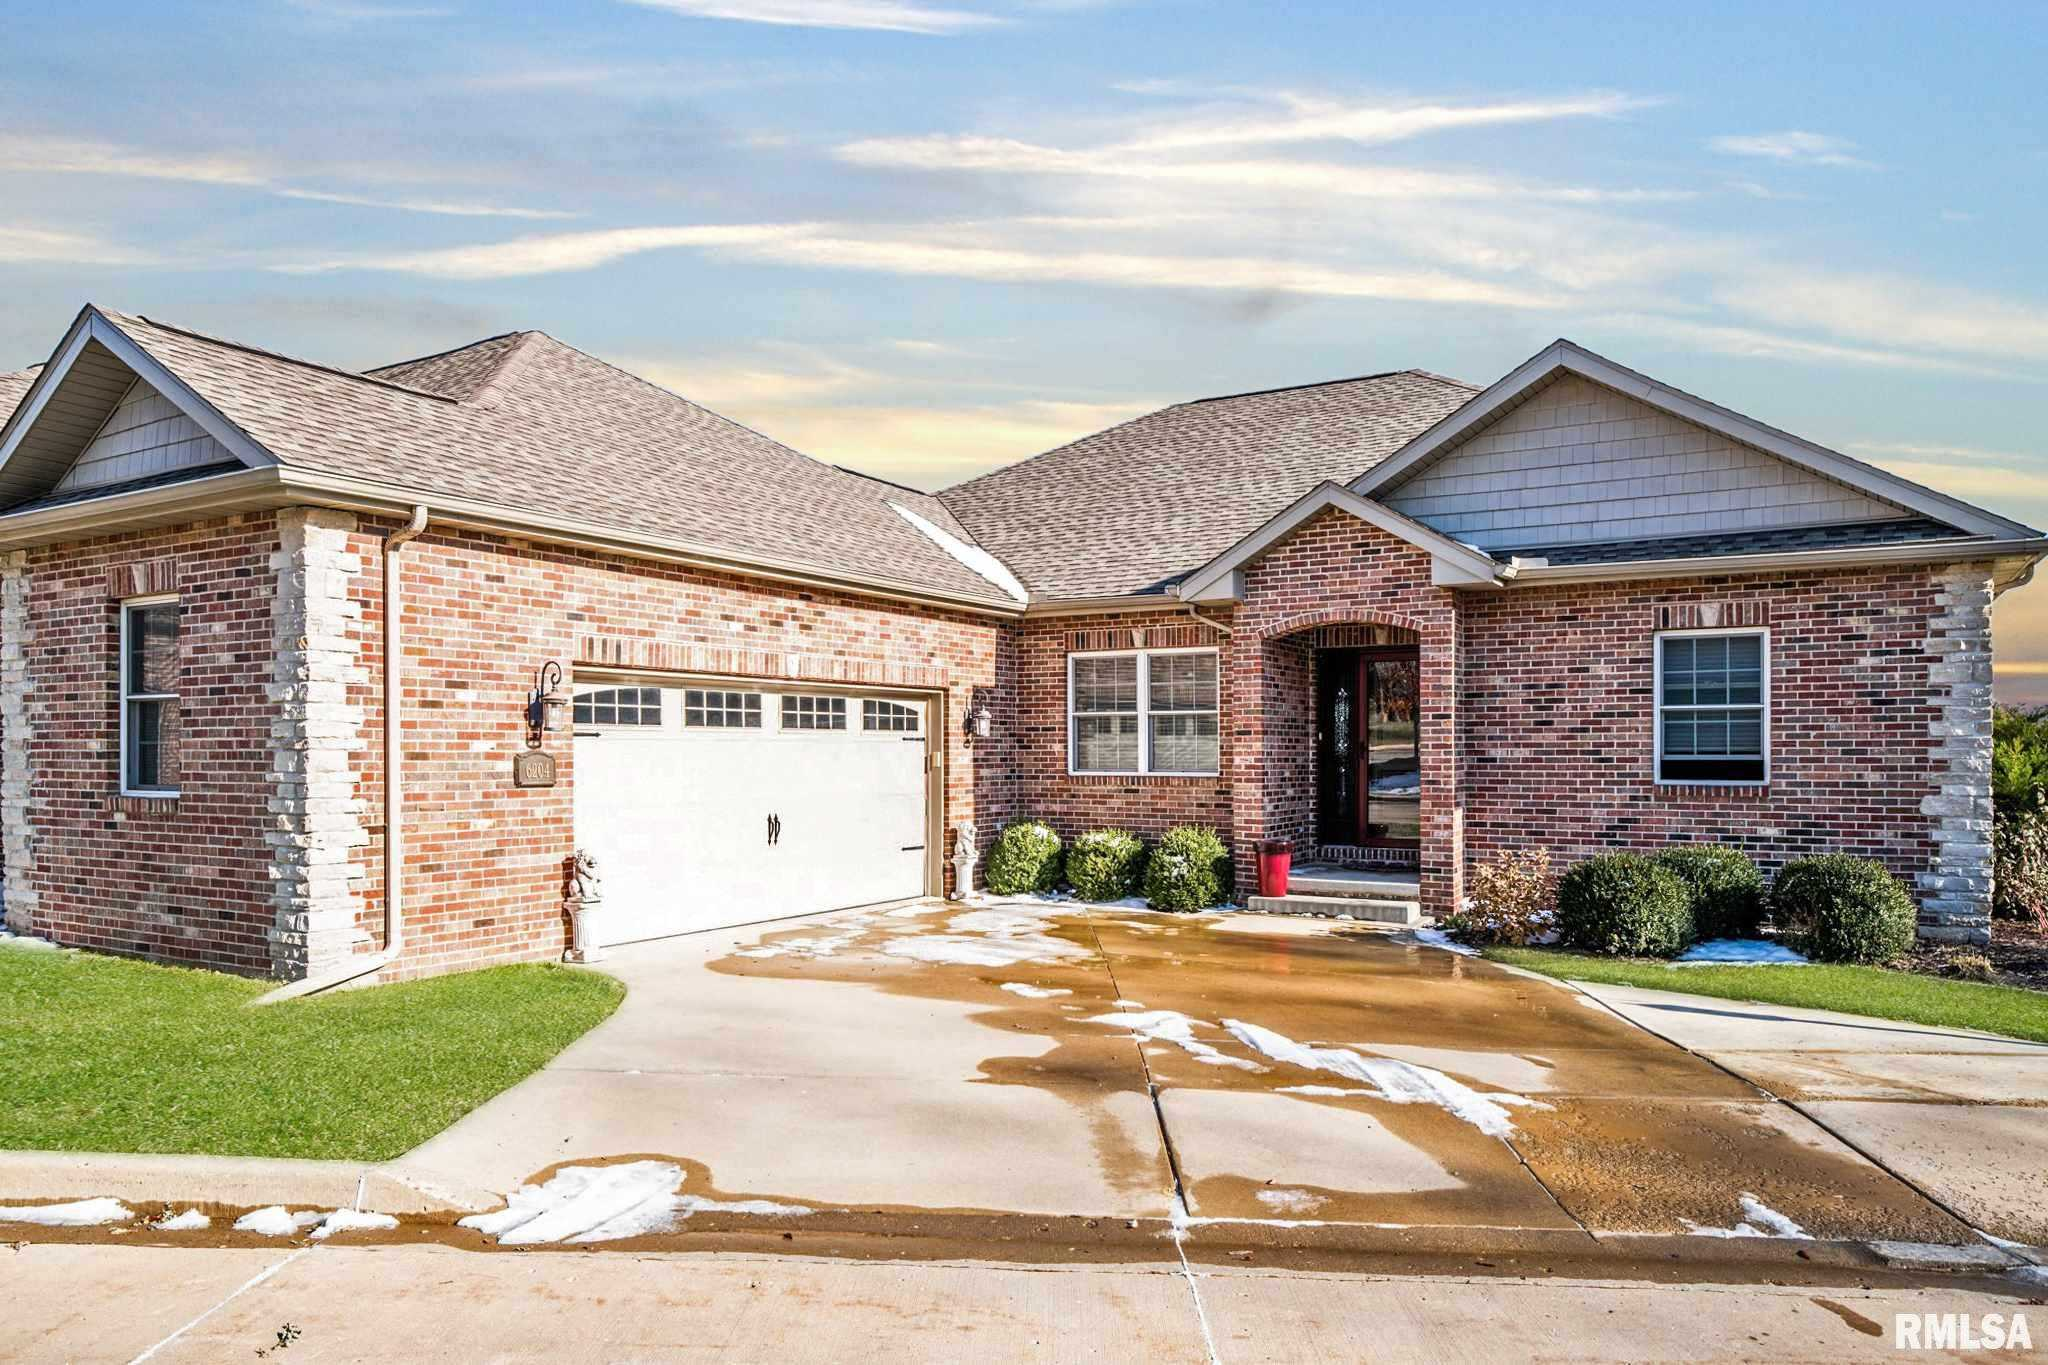 $325,000 - 3Br/2Ba -  for Sale in Villas At Mandalay Woods, Peoria